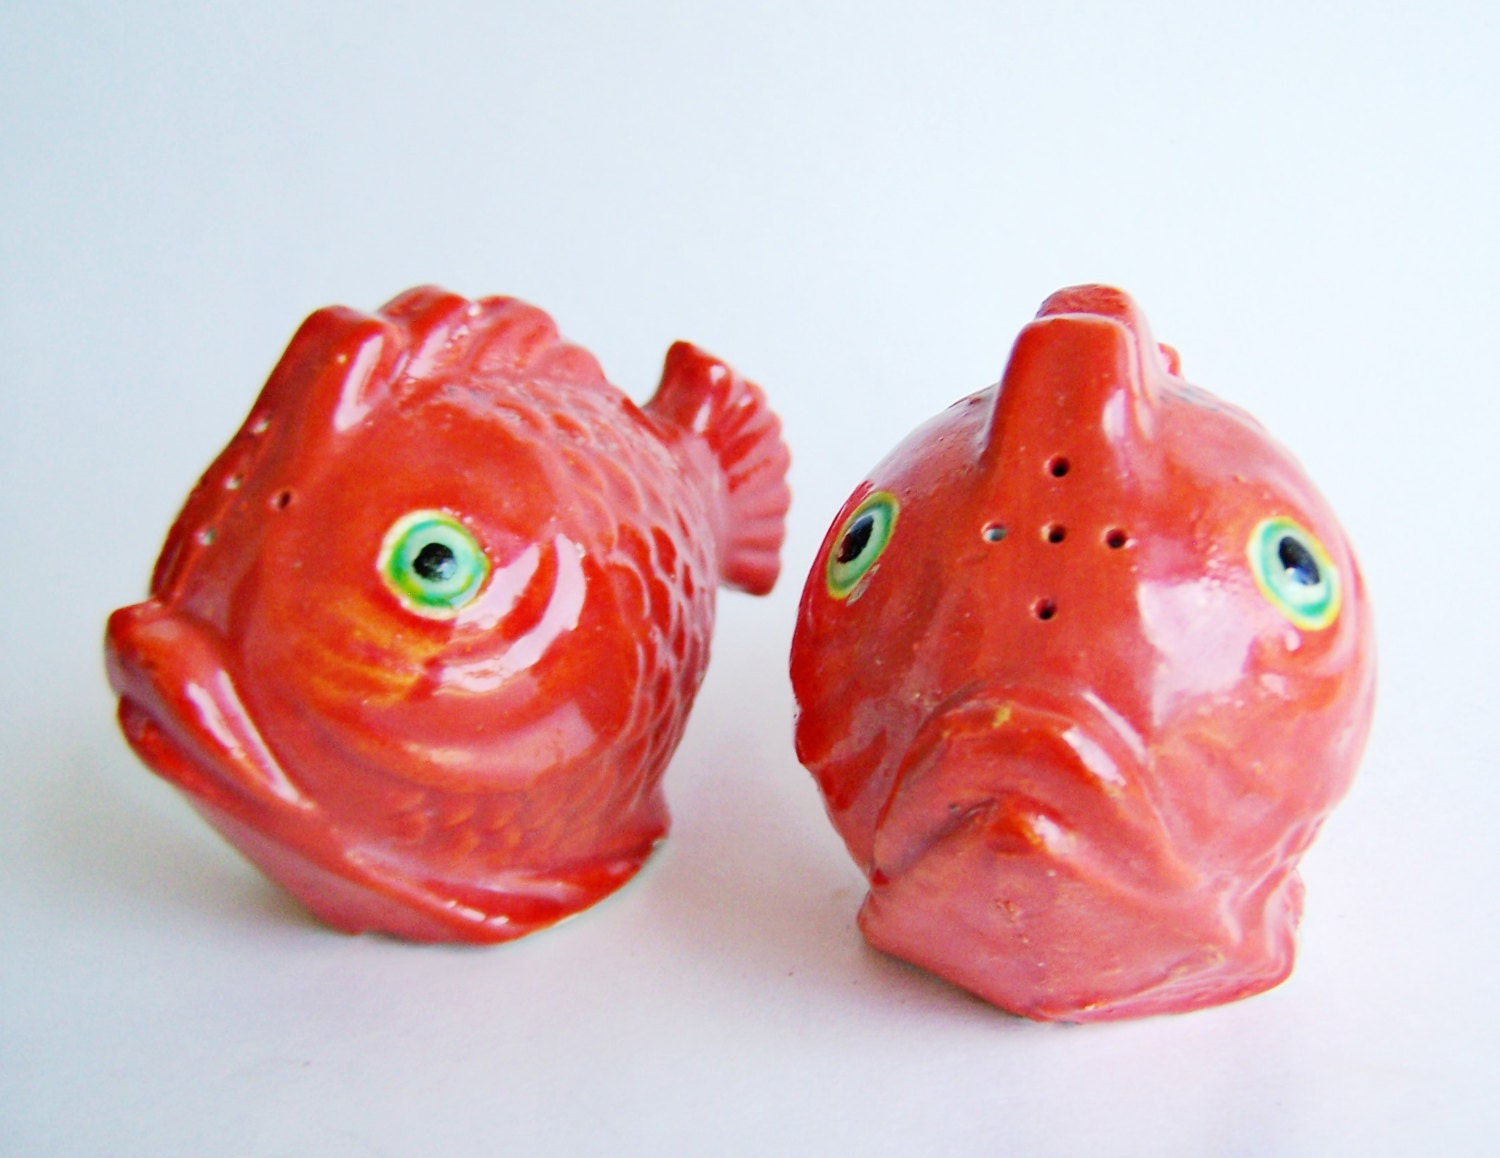 Vintage goldfish salt and pepper shakers painted whiteware Colorful salt and pepper shakers